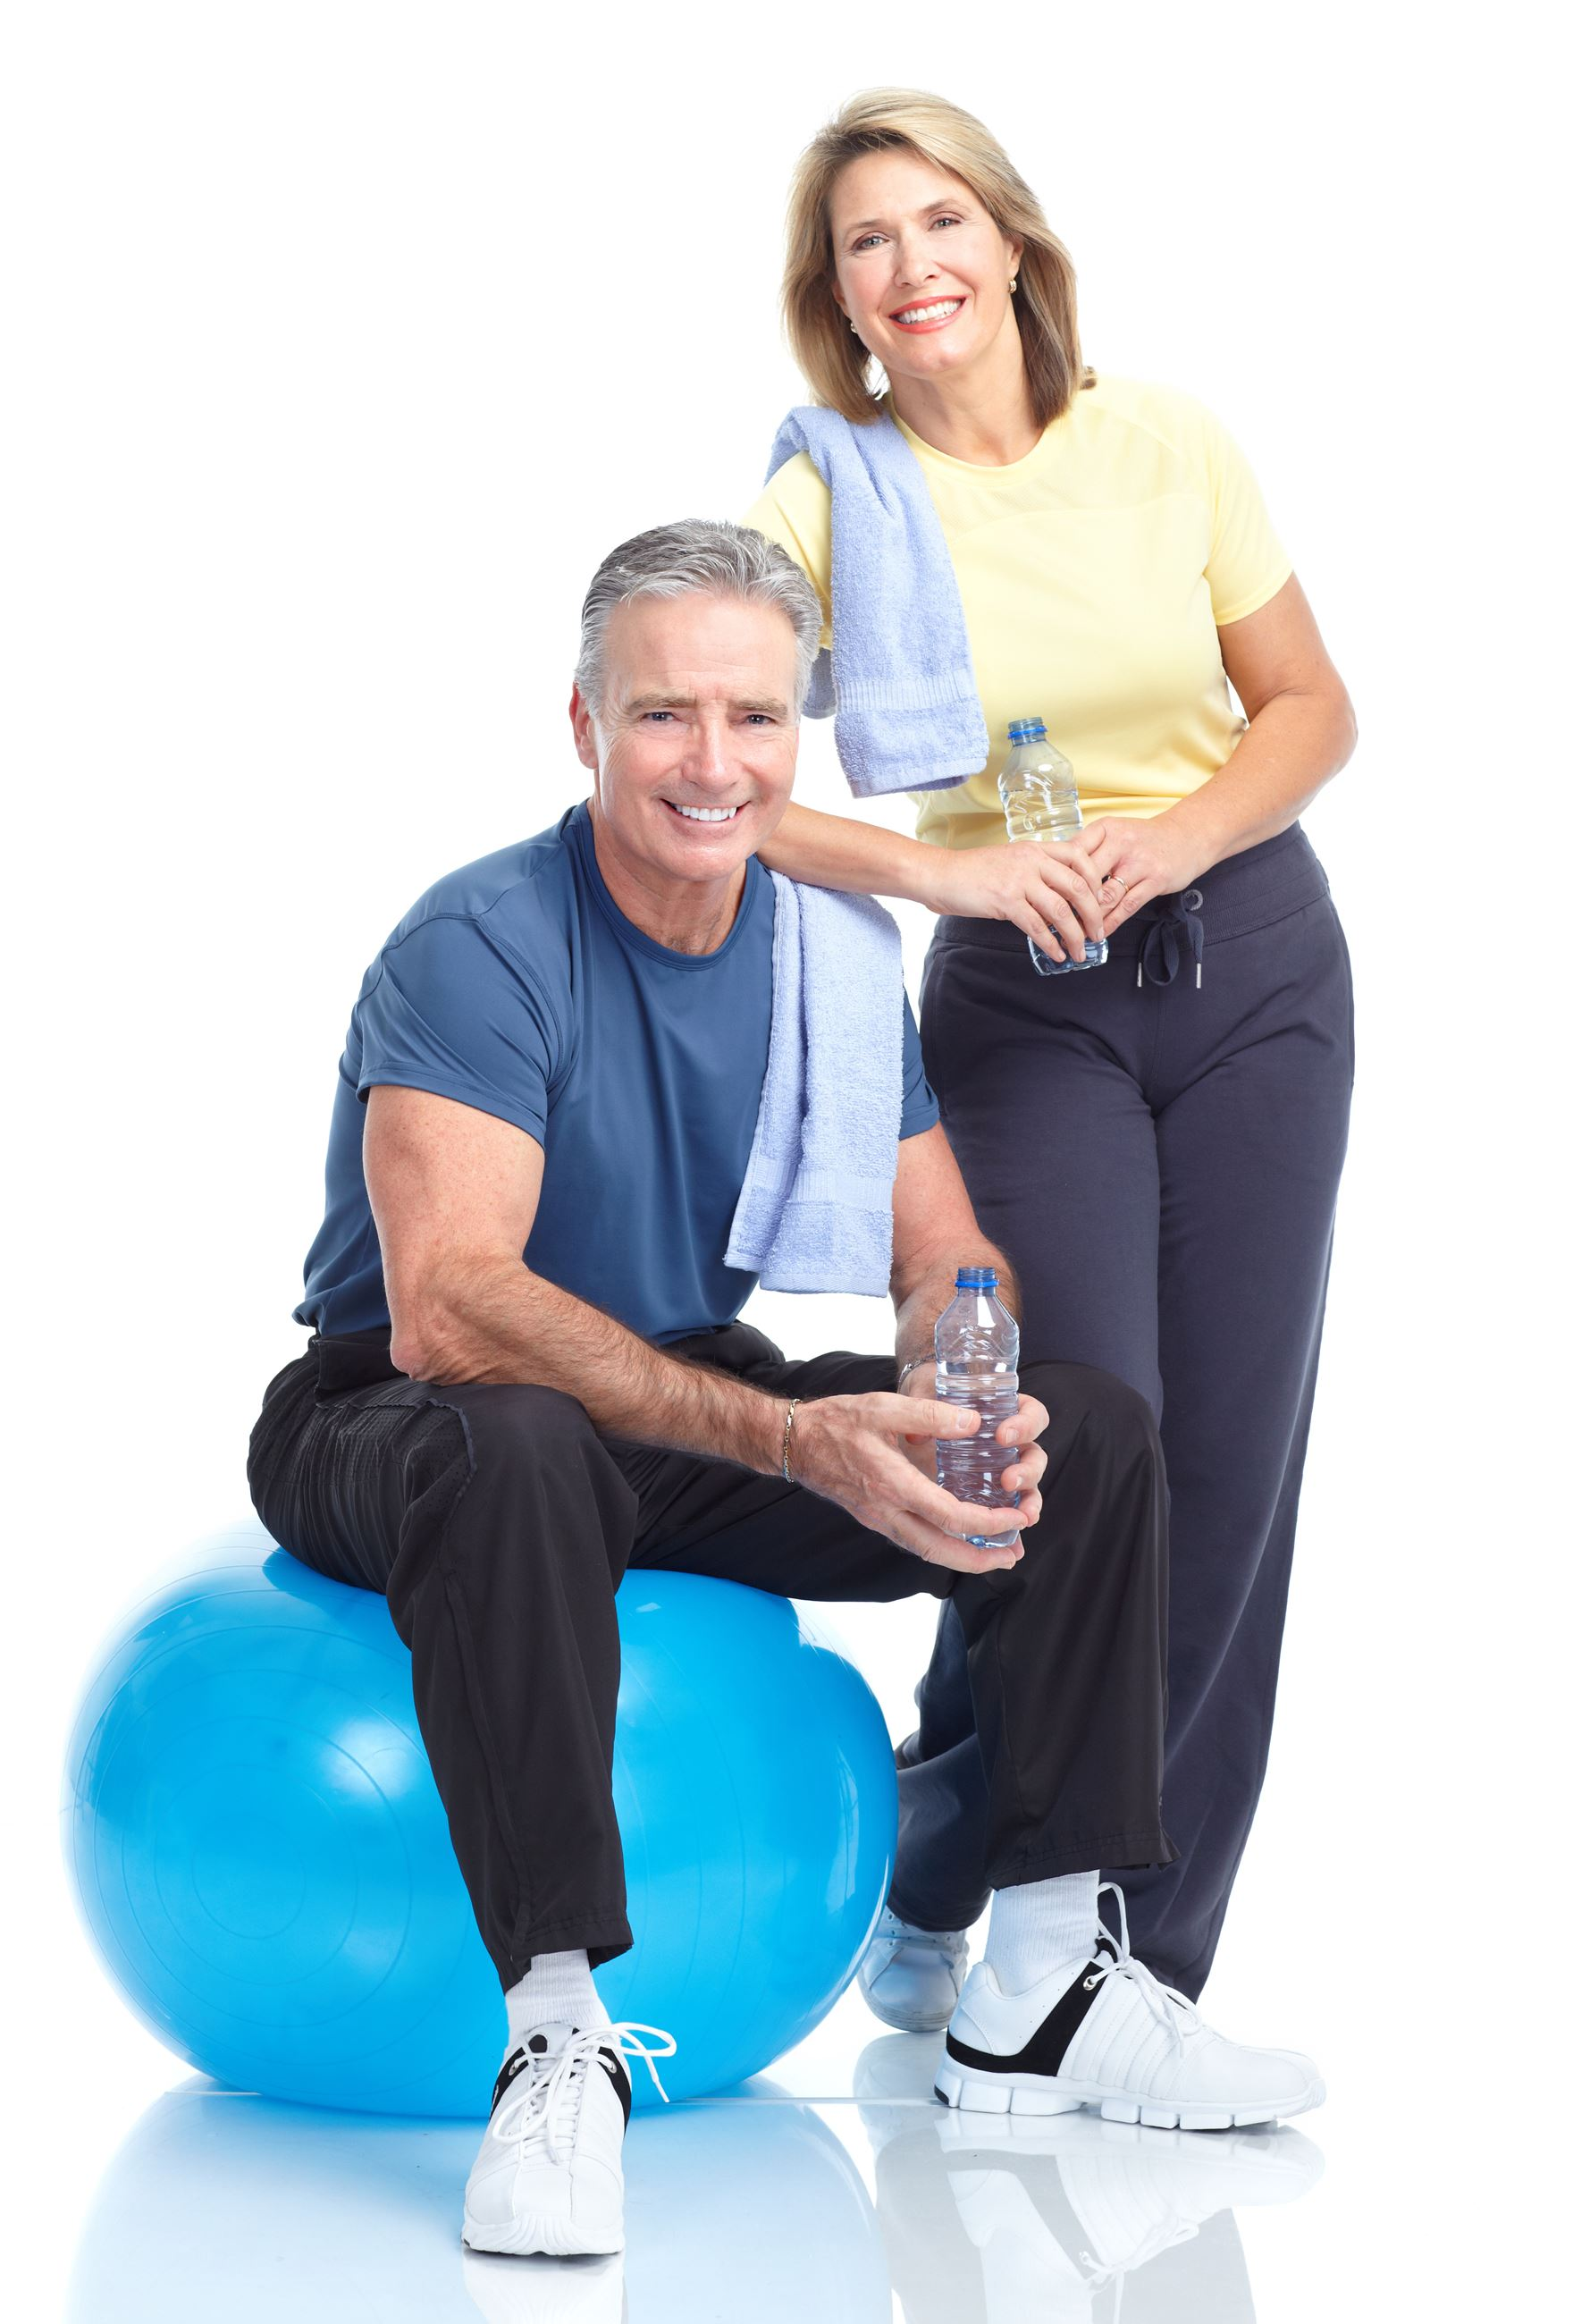 Older man and women with physical activity equipment